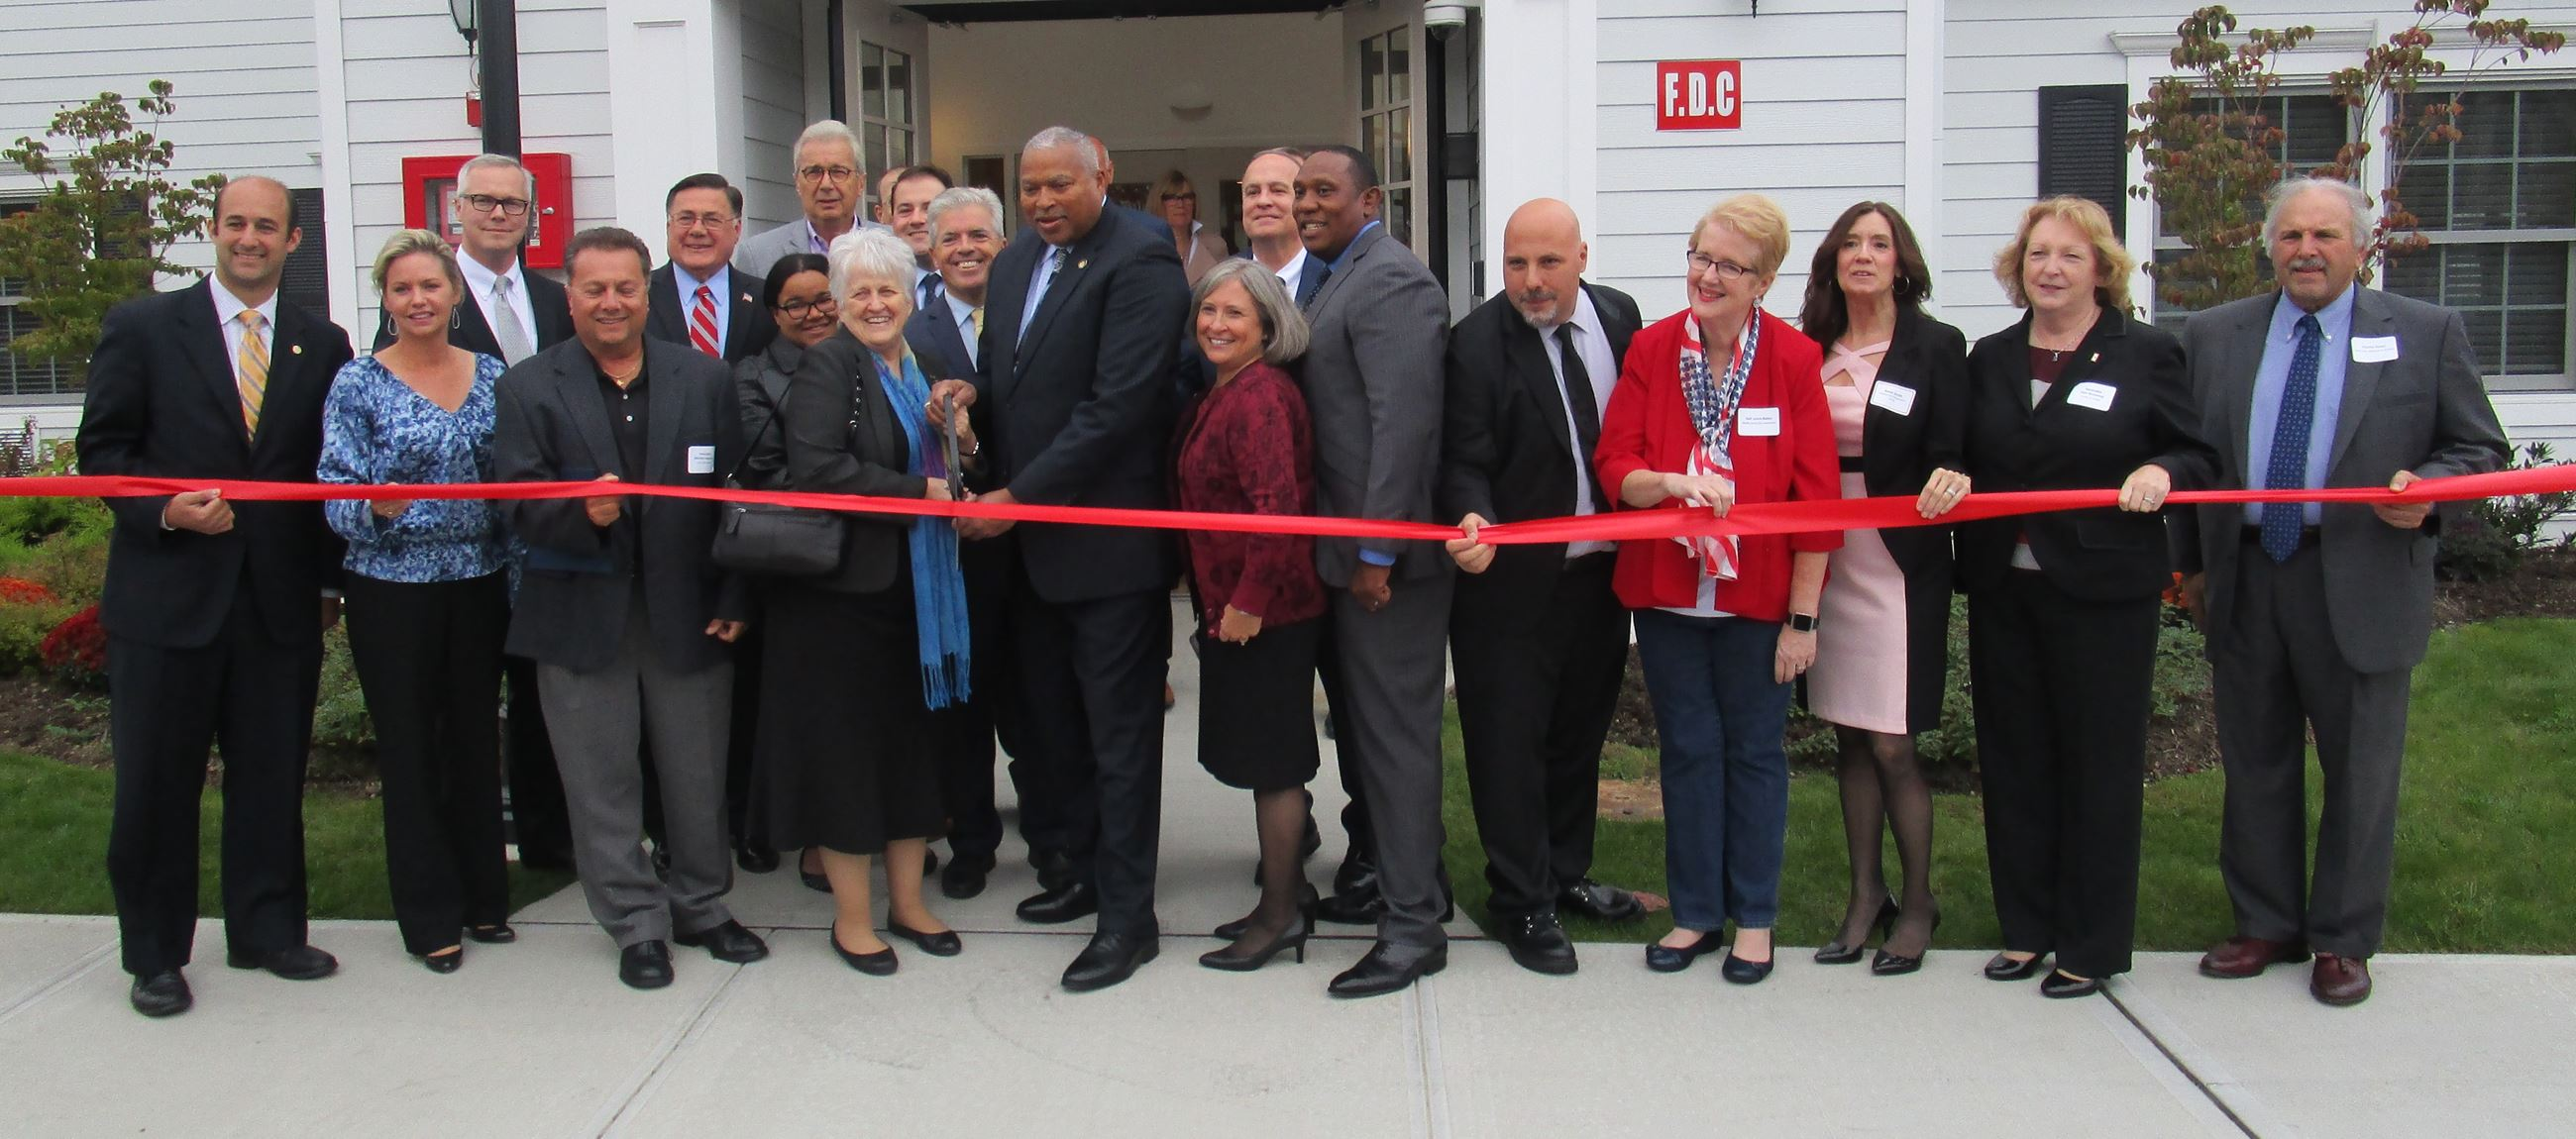 Elected officials and community leaders cut the ribbon at Renaissance Village.